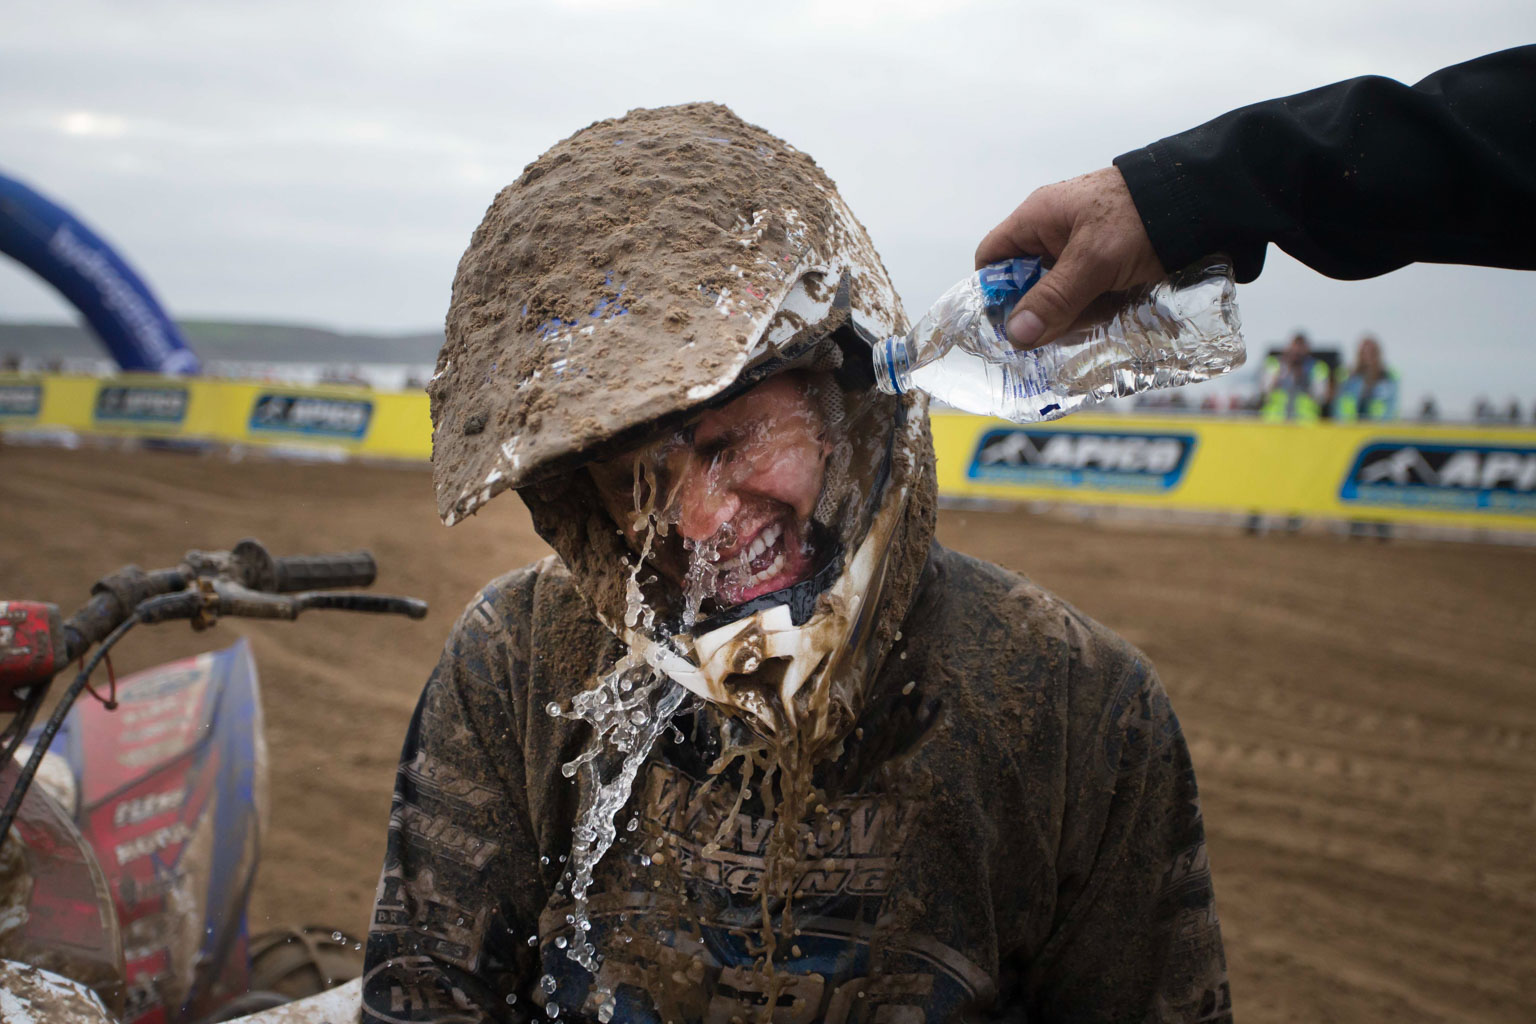 Stefan Murphy (Yamaha) getting sand washed out of his eyes by Paul Winrow after the finish